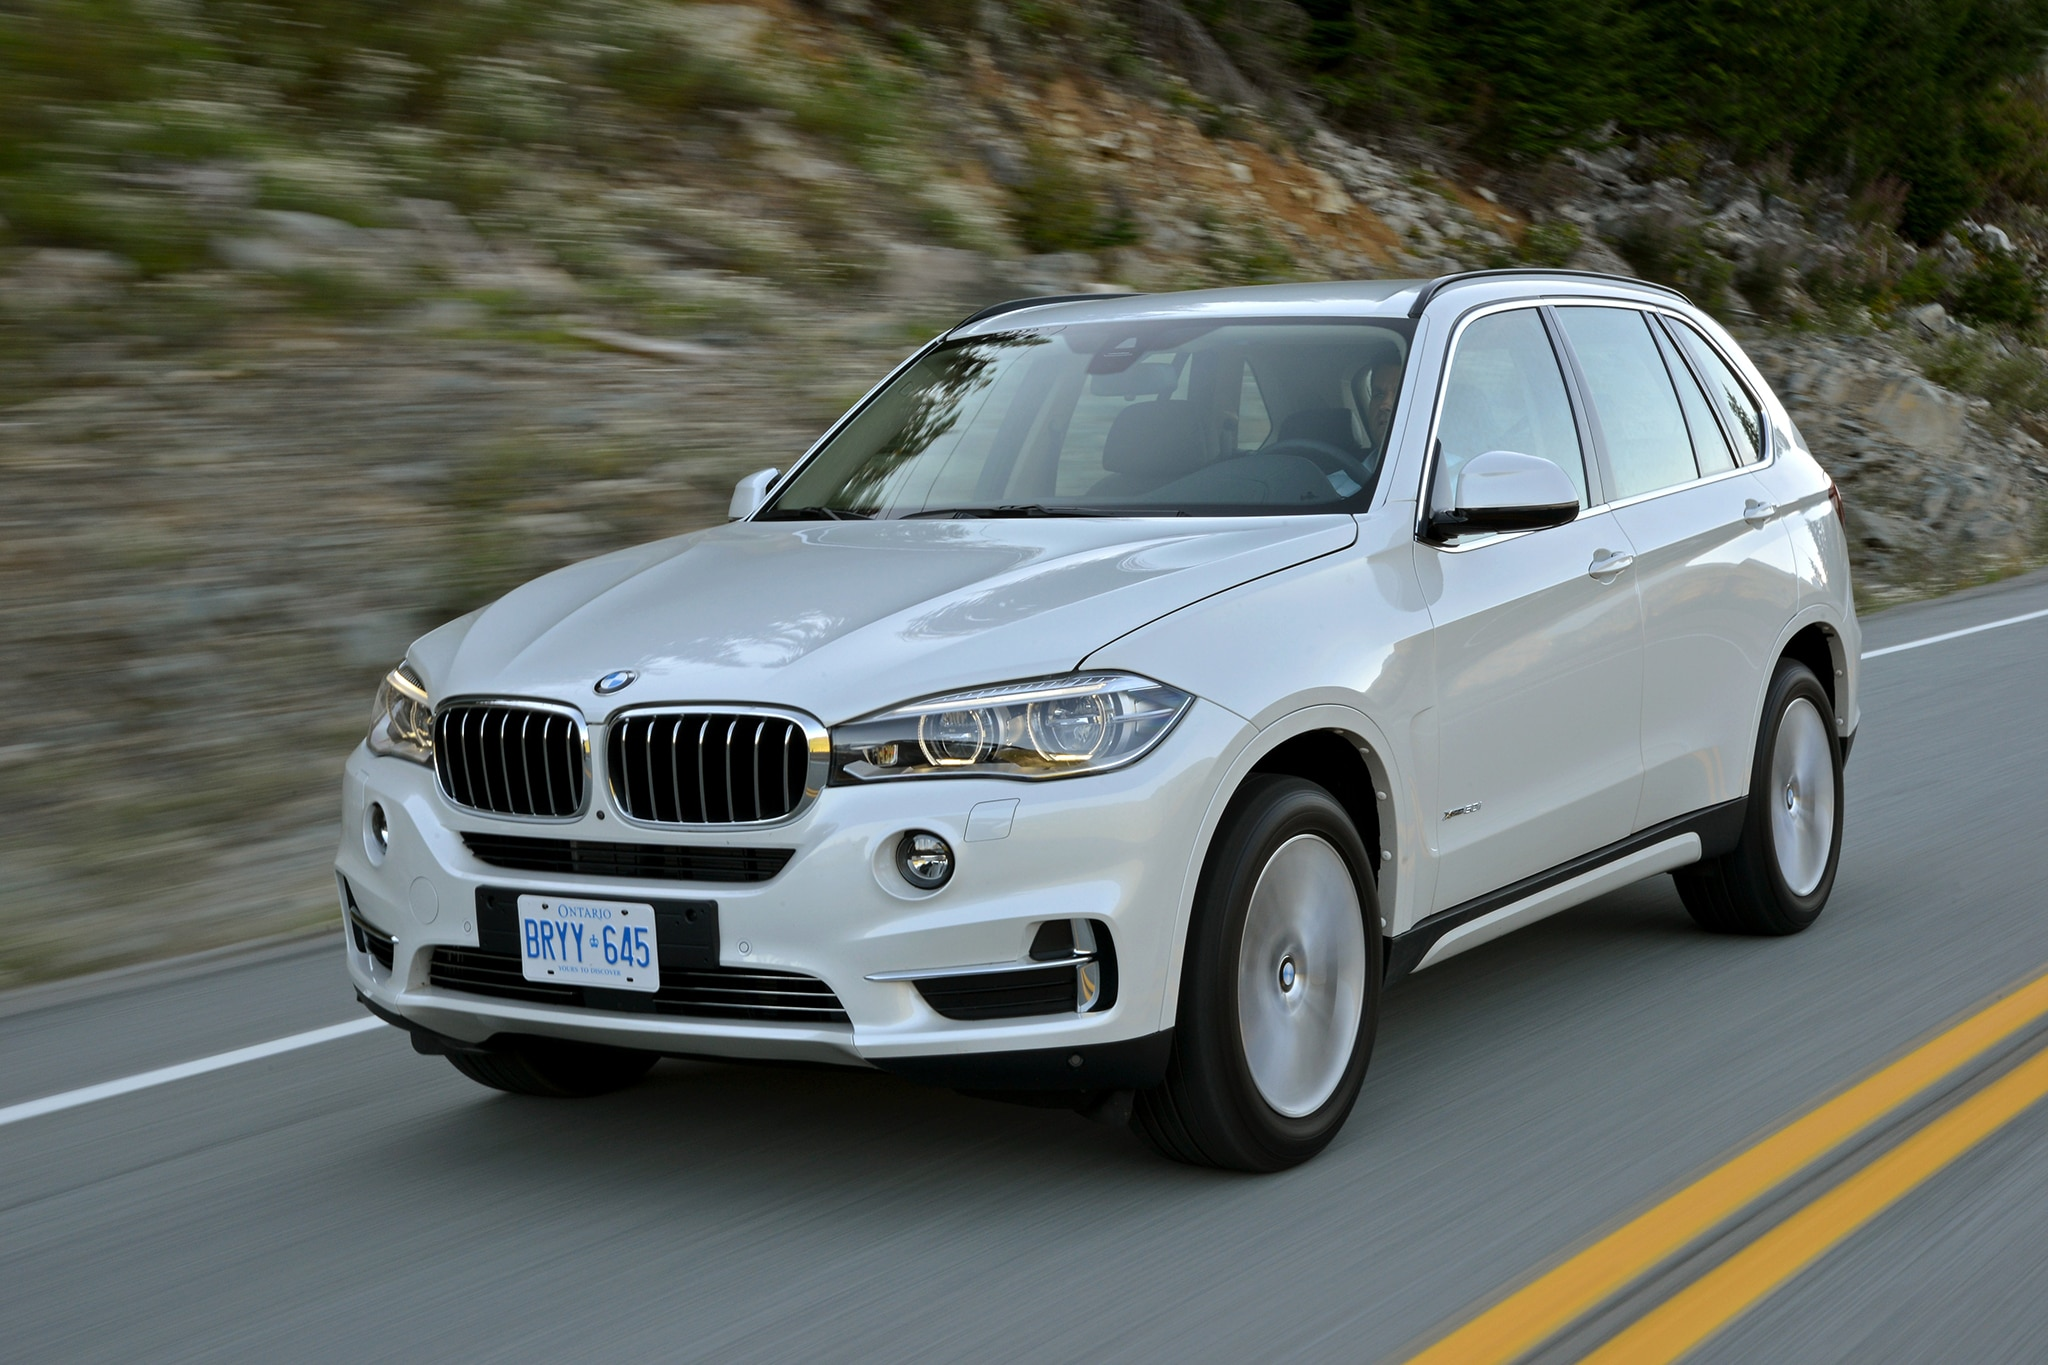 2014 bmw x5 xdrive35d first drive review new on new html html autos post. Black Bedroom Furniture Sets. Home Design Ideas